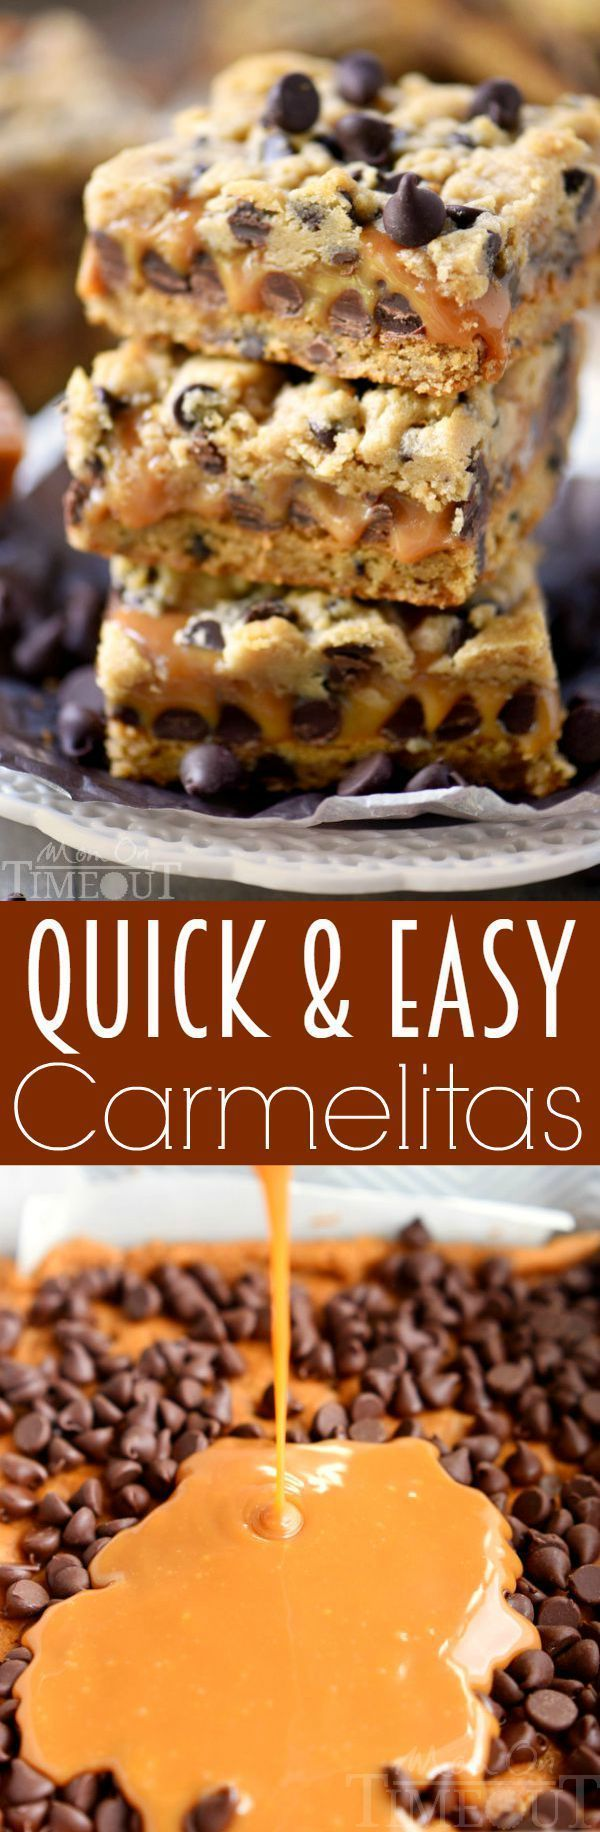 These Quick and Easy Carmelitas use only four ingredients! A truly decadent treat, the ooey, gooey caramel center of these amazing bars is impossible to resist! An easy dessert recipe ANYONE can make! | MomOnTimeout.com | #recipe #easy #easydesserts